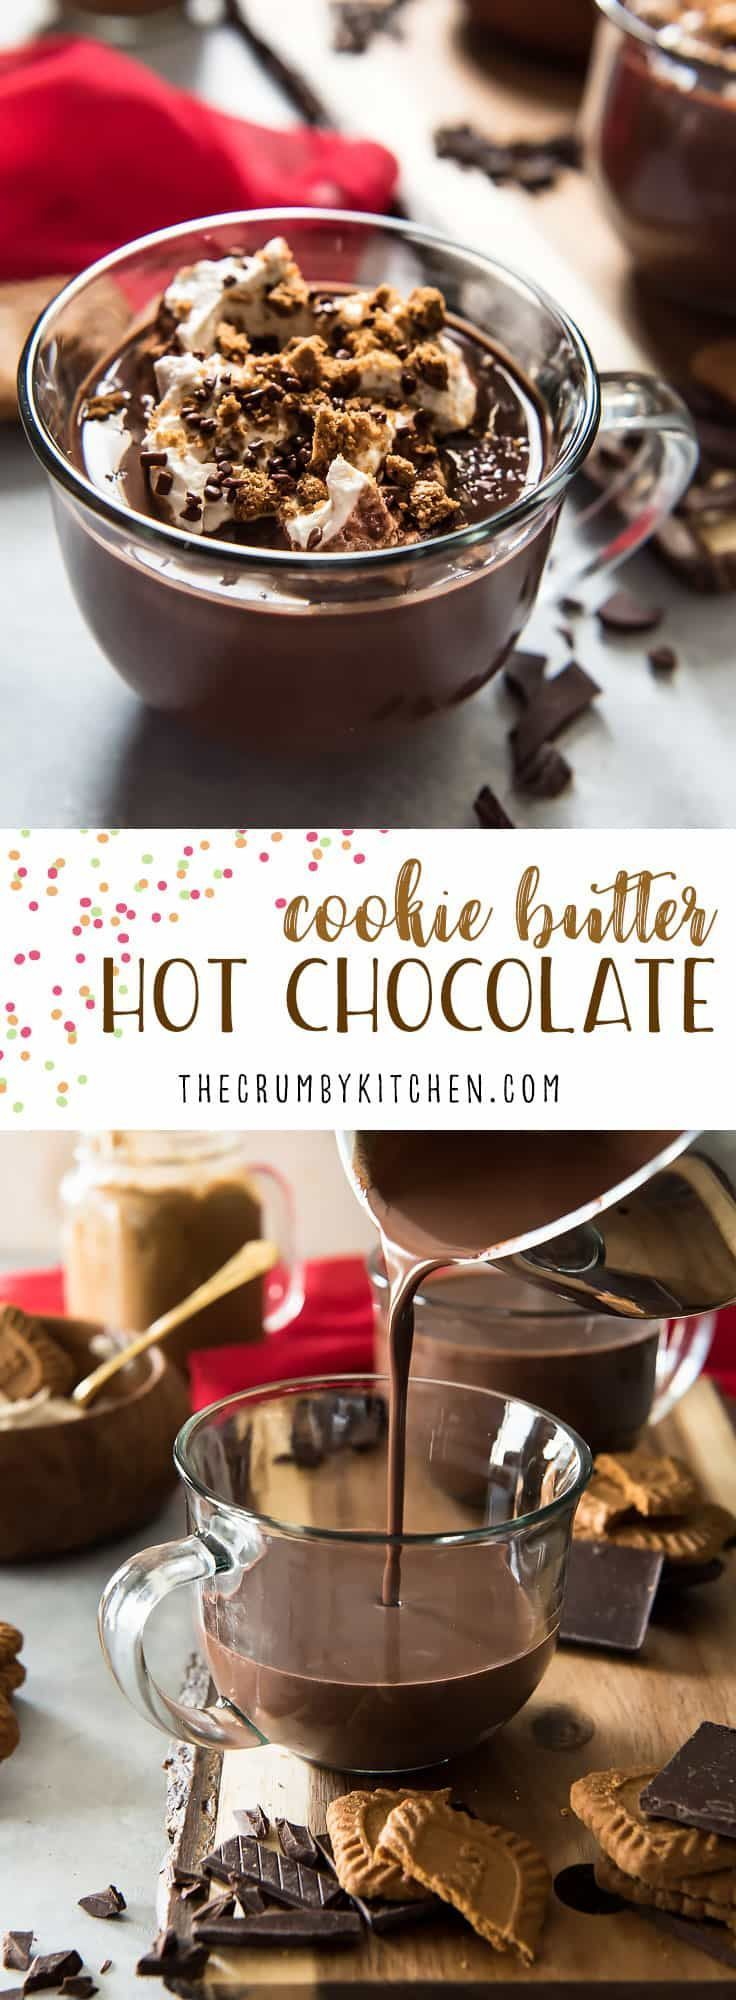 Watch out, sweets lovers - you're about to fall in love with the thickest, richest Cookie Butter Hot Chocolate on the planet! It's perfect for cookie dippin' and just plain sippin', too. #cookiebutter #hotcocoa #recipe #hotchocolate #drink #recipes #winter #fall #chocolatechaud #french #dessert #biscoff #speculoos #chocolate #whippedcream